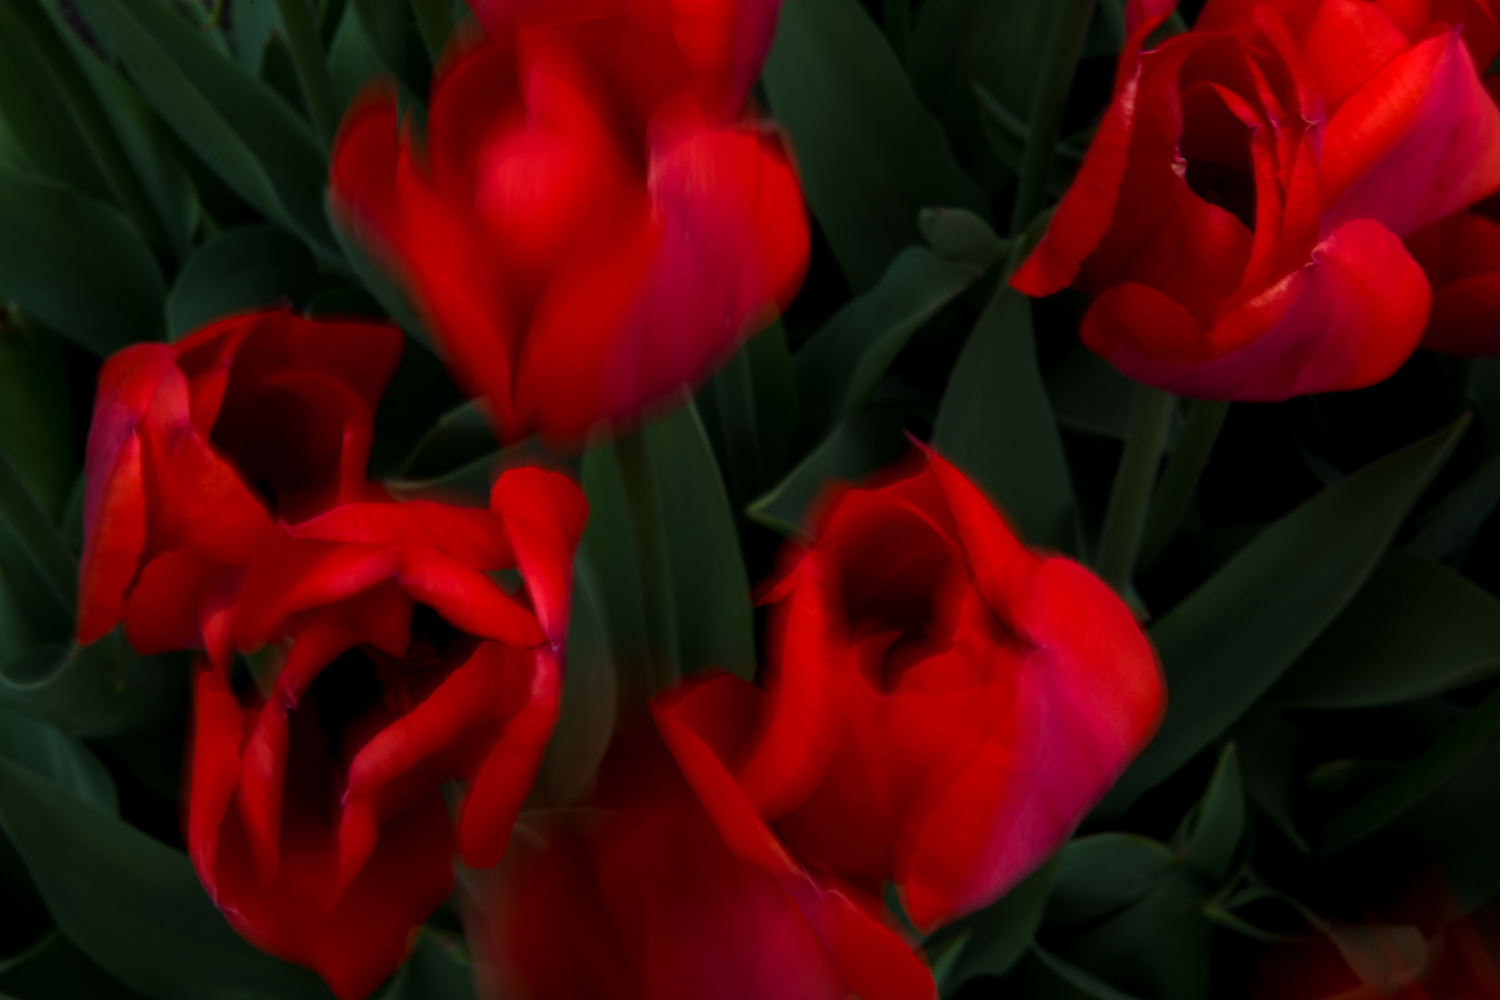 Red Tulips No. 6